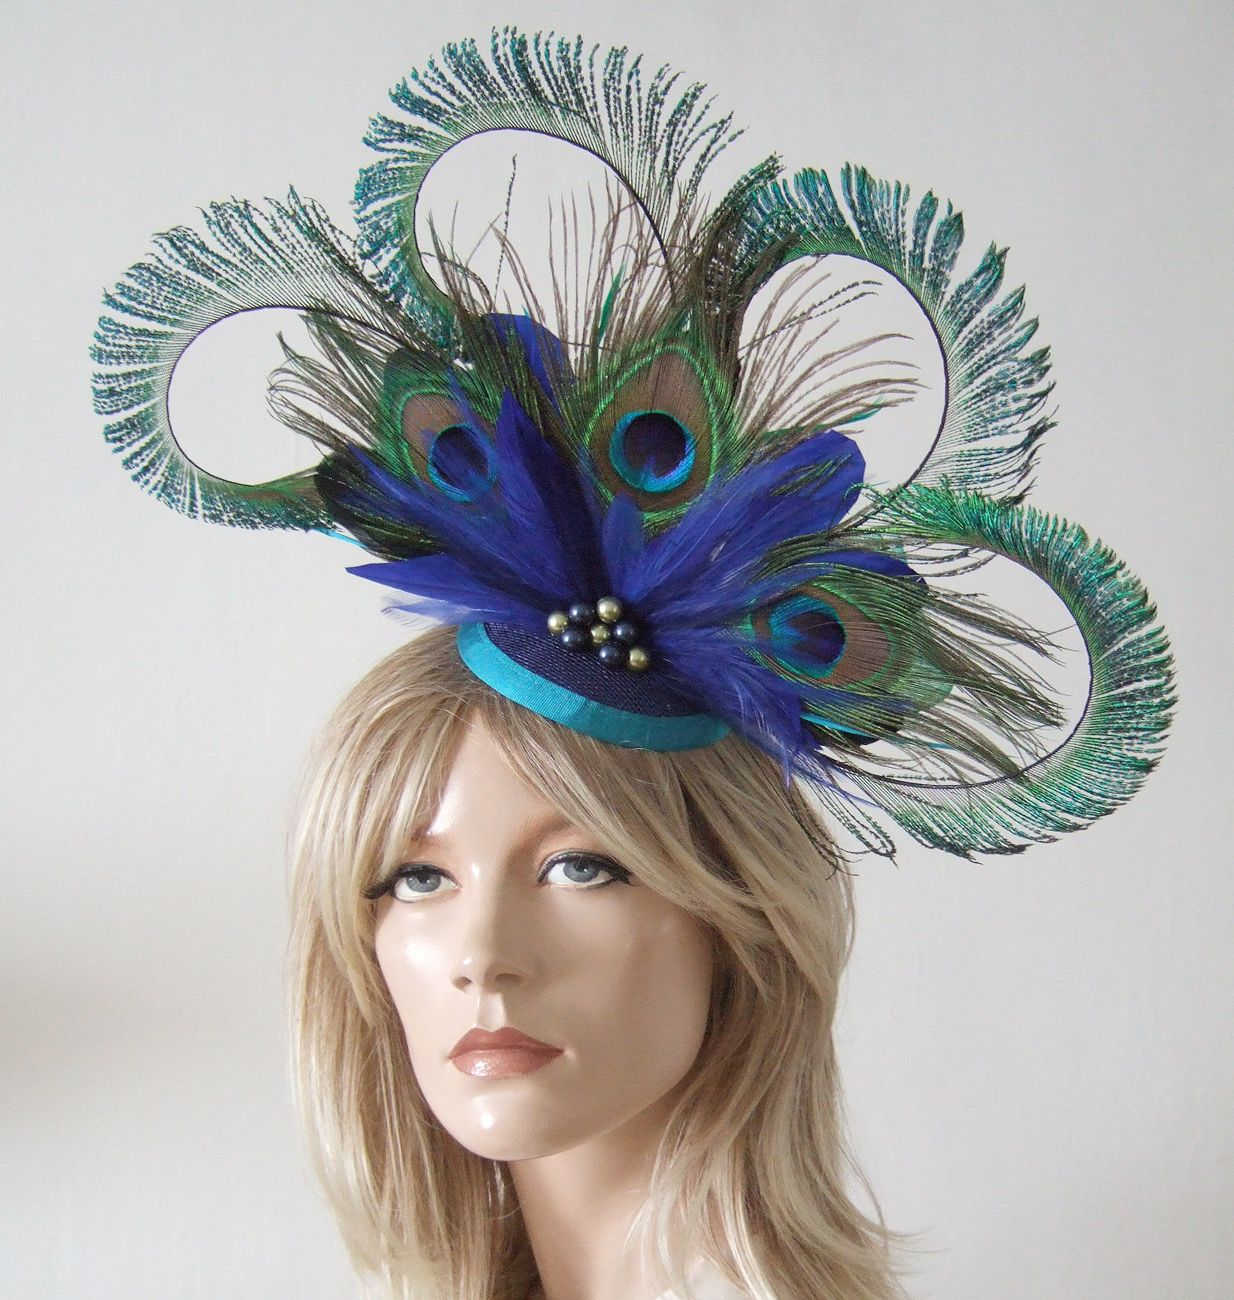 Peacock Feathers Cluster and Crinoline and Swarovski Pearls Blue Green  Fascinator Headpiece Hat Hatinator. Hat for the Races. Melbourne Cup 062a9280b57